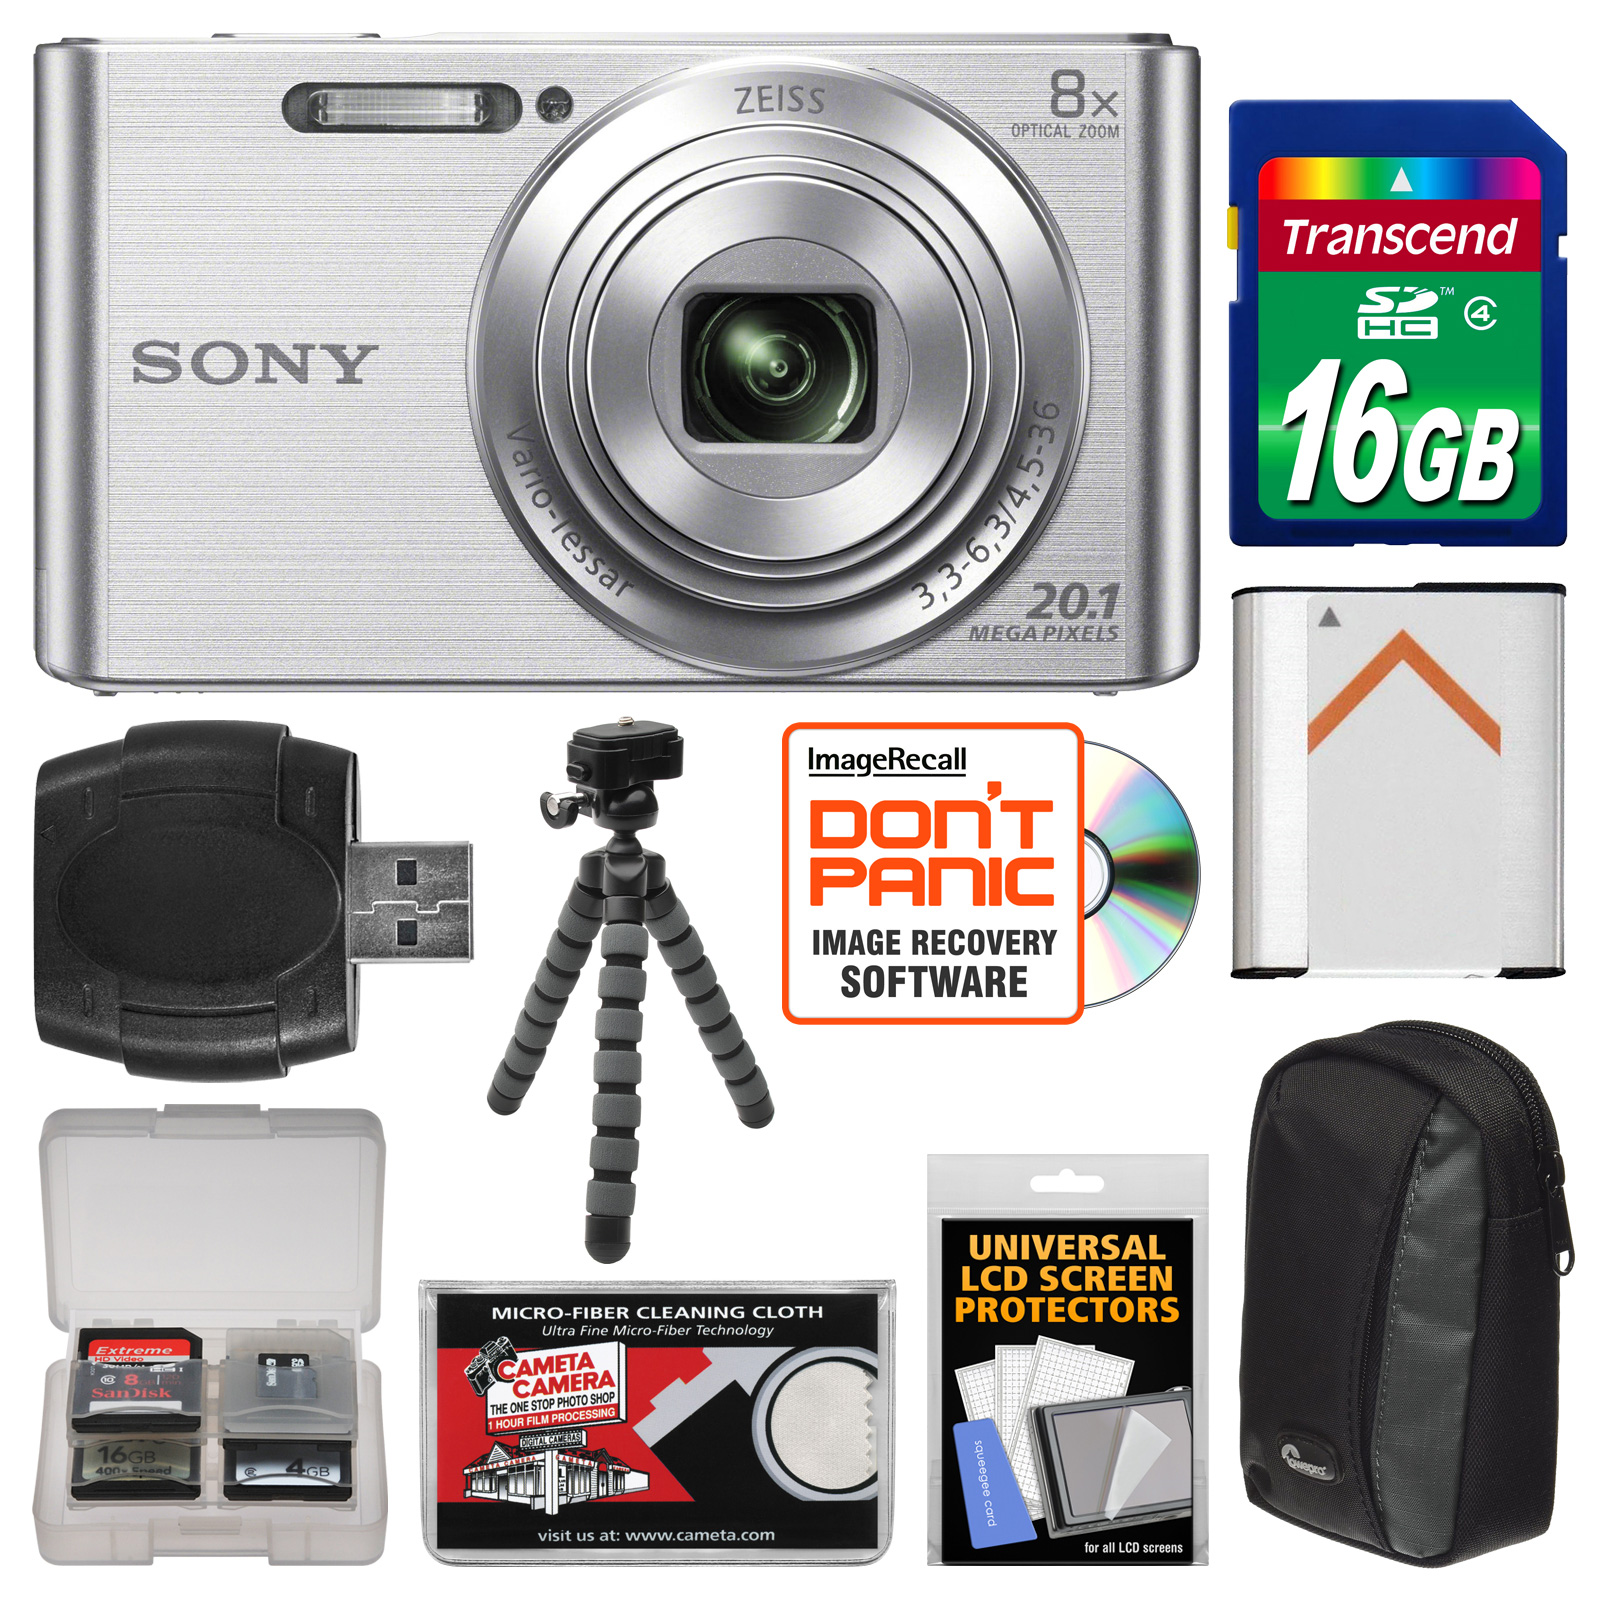 Sony Cyber-Shot DSC-W830 Digital Camera (Silver) with 16GB Card + Case + Battery + Flex Tripod + Accessory Kit